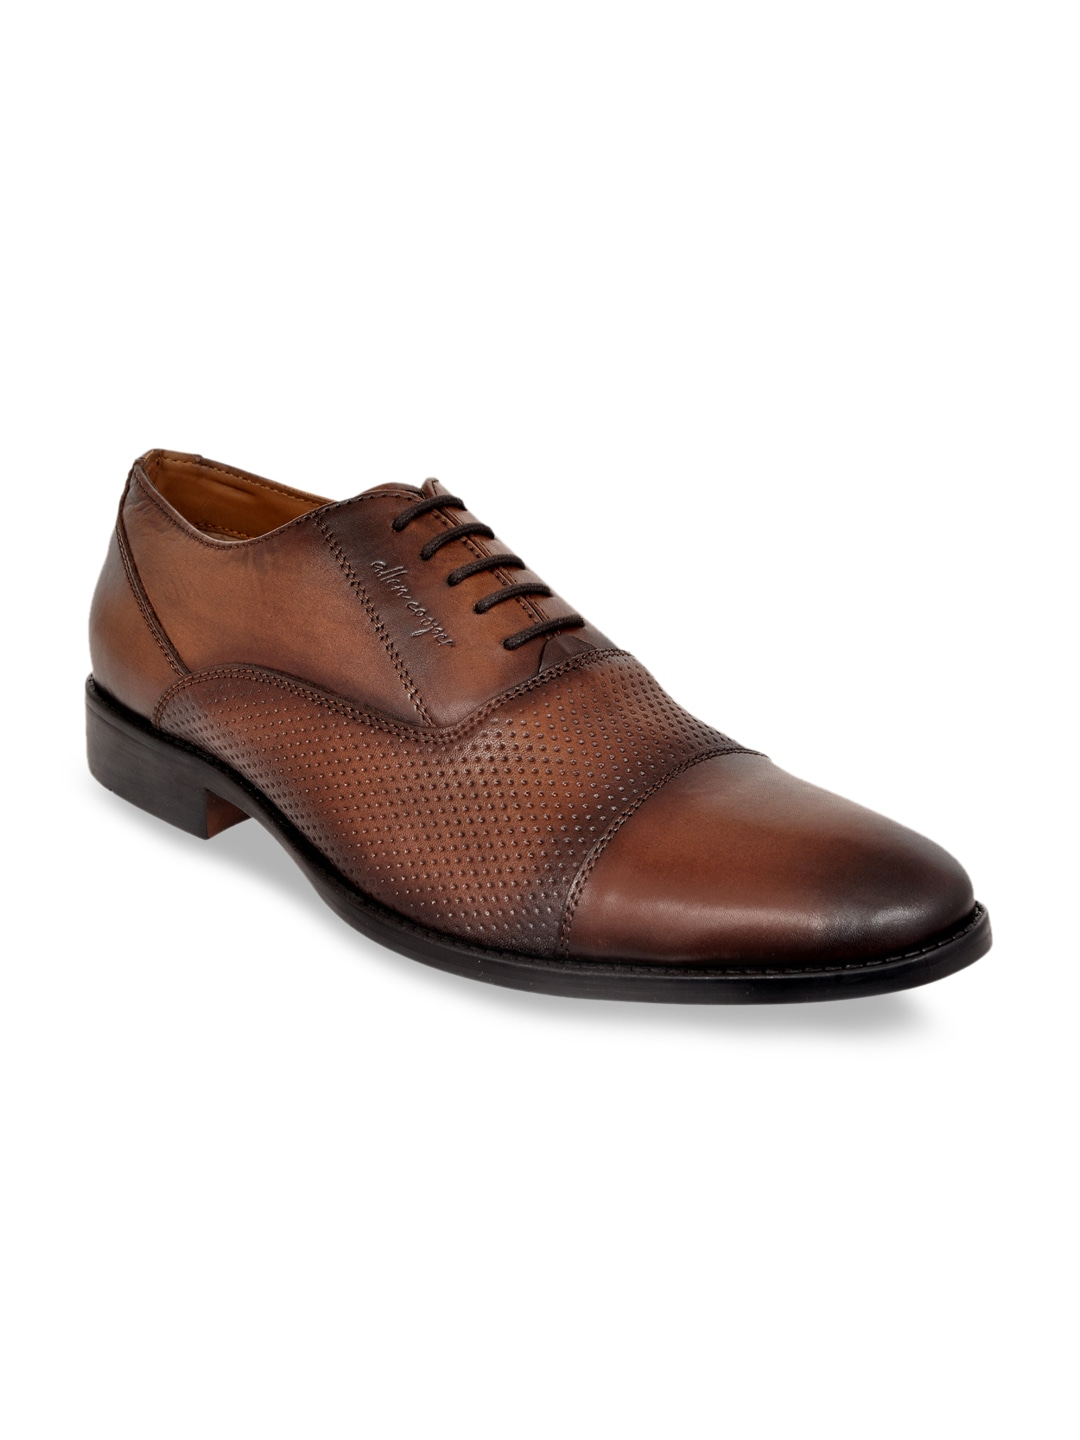 Brown Textured Genuine Leather Formal Oxfords